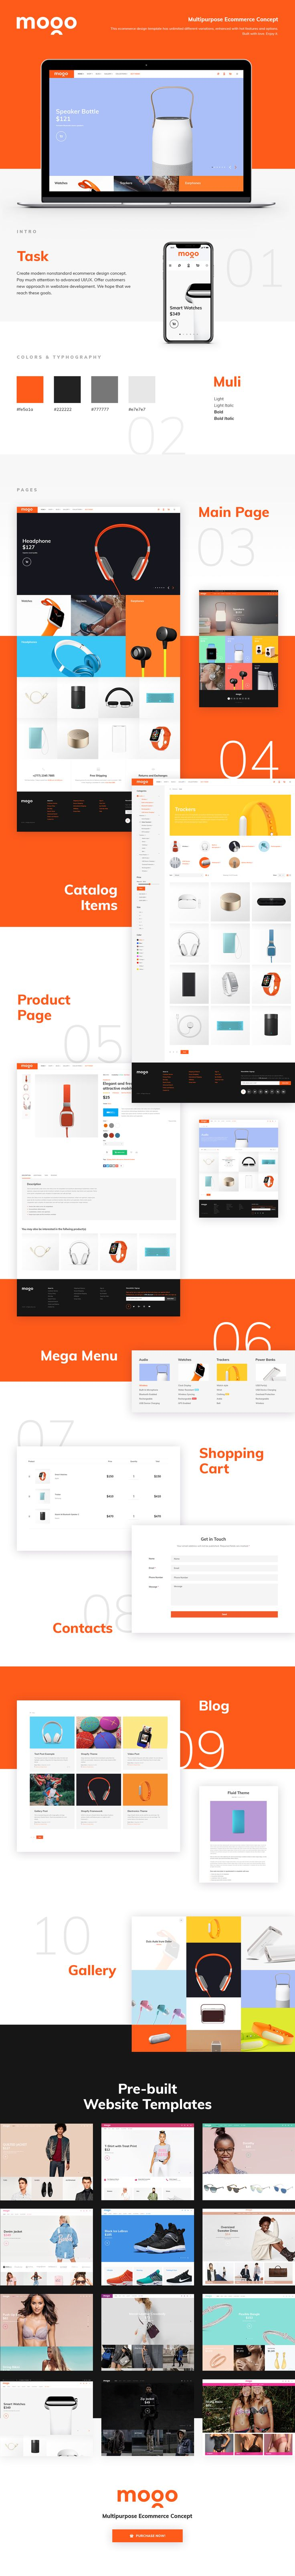 MOGO is premium eCommerce template for clothing, electronics, apparel, fashion stores.